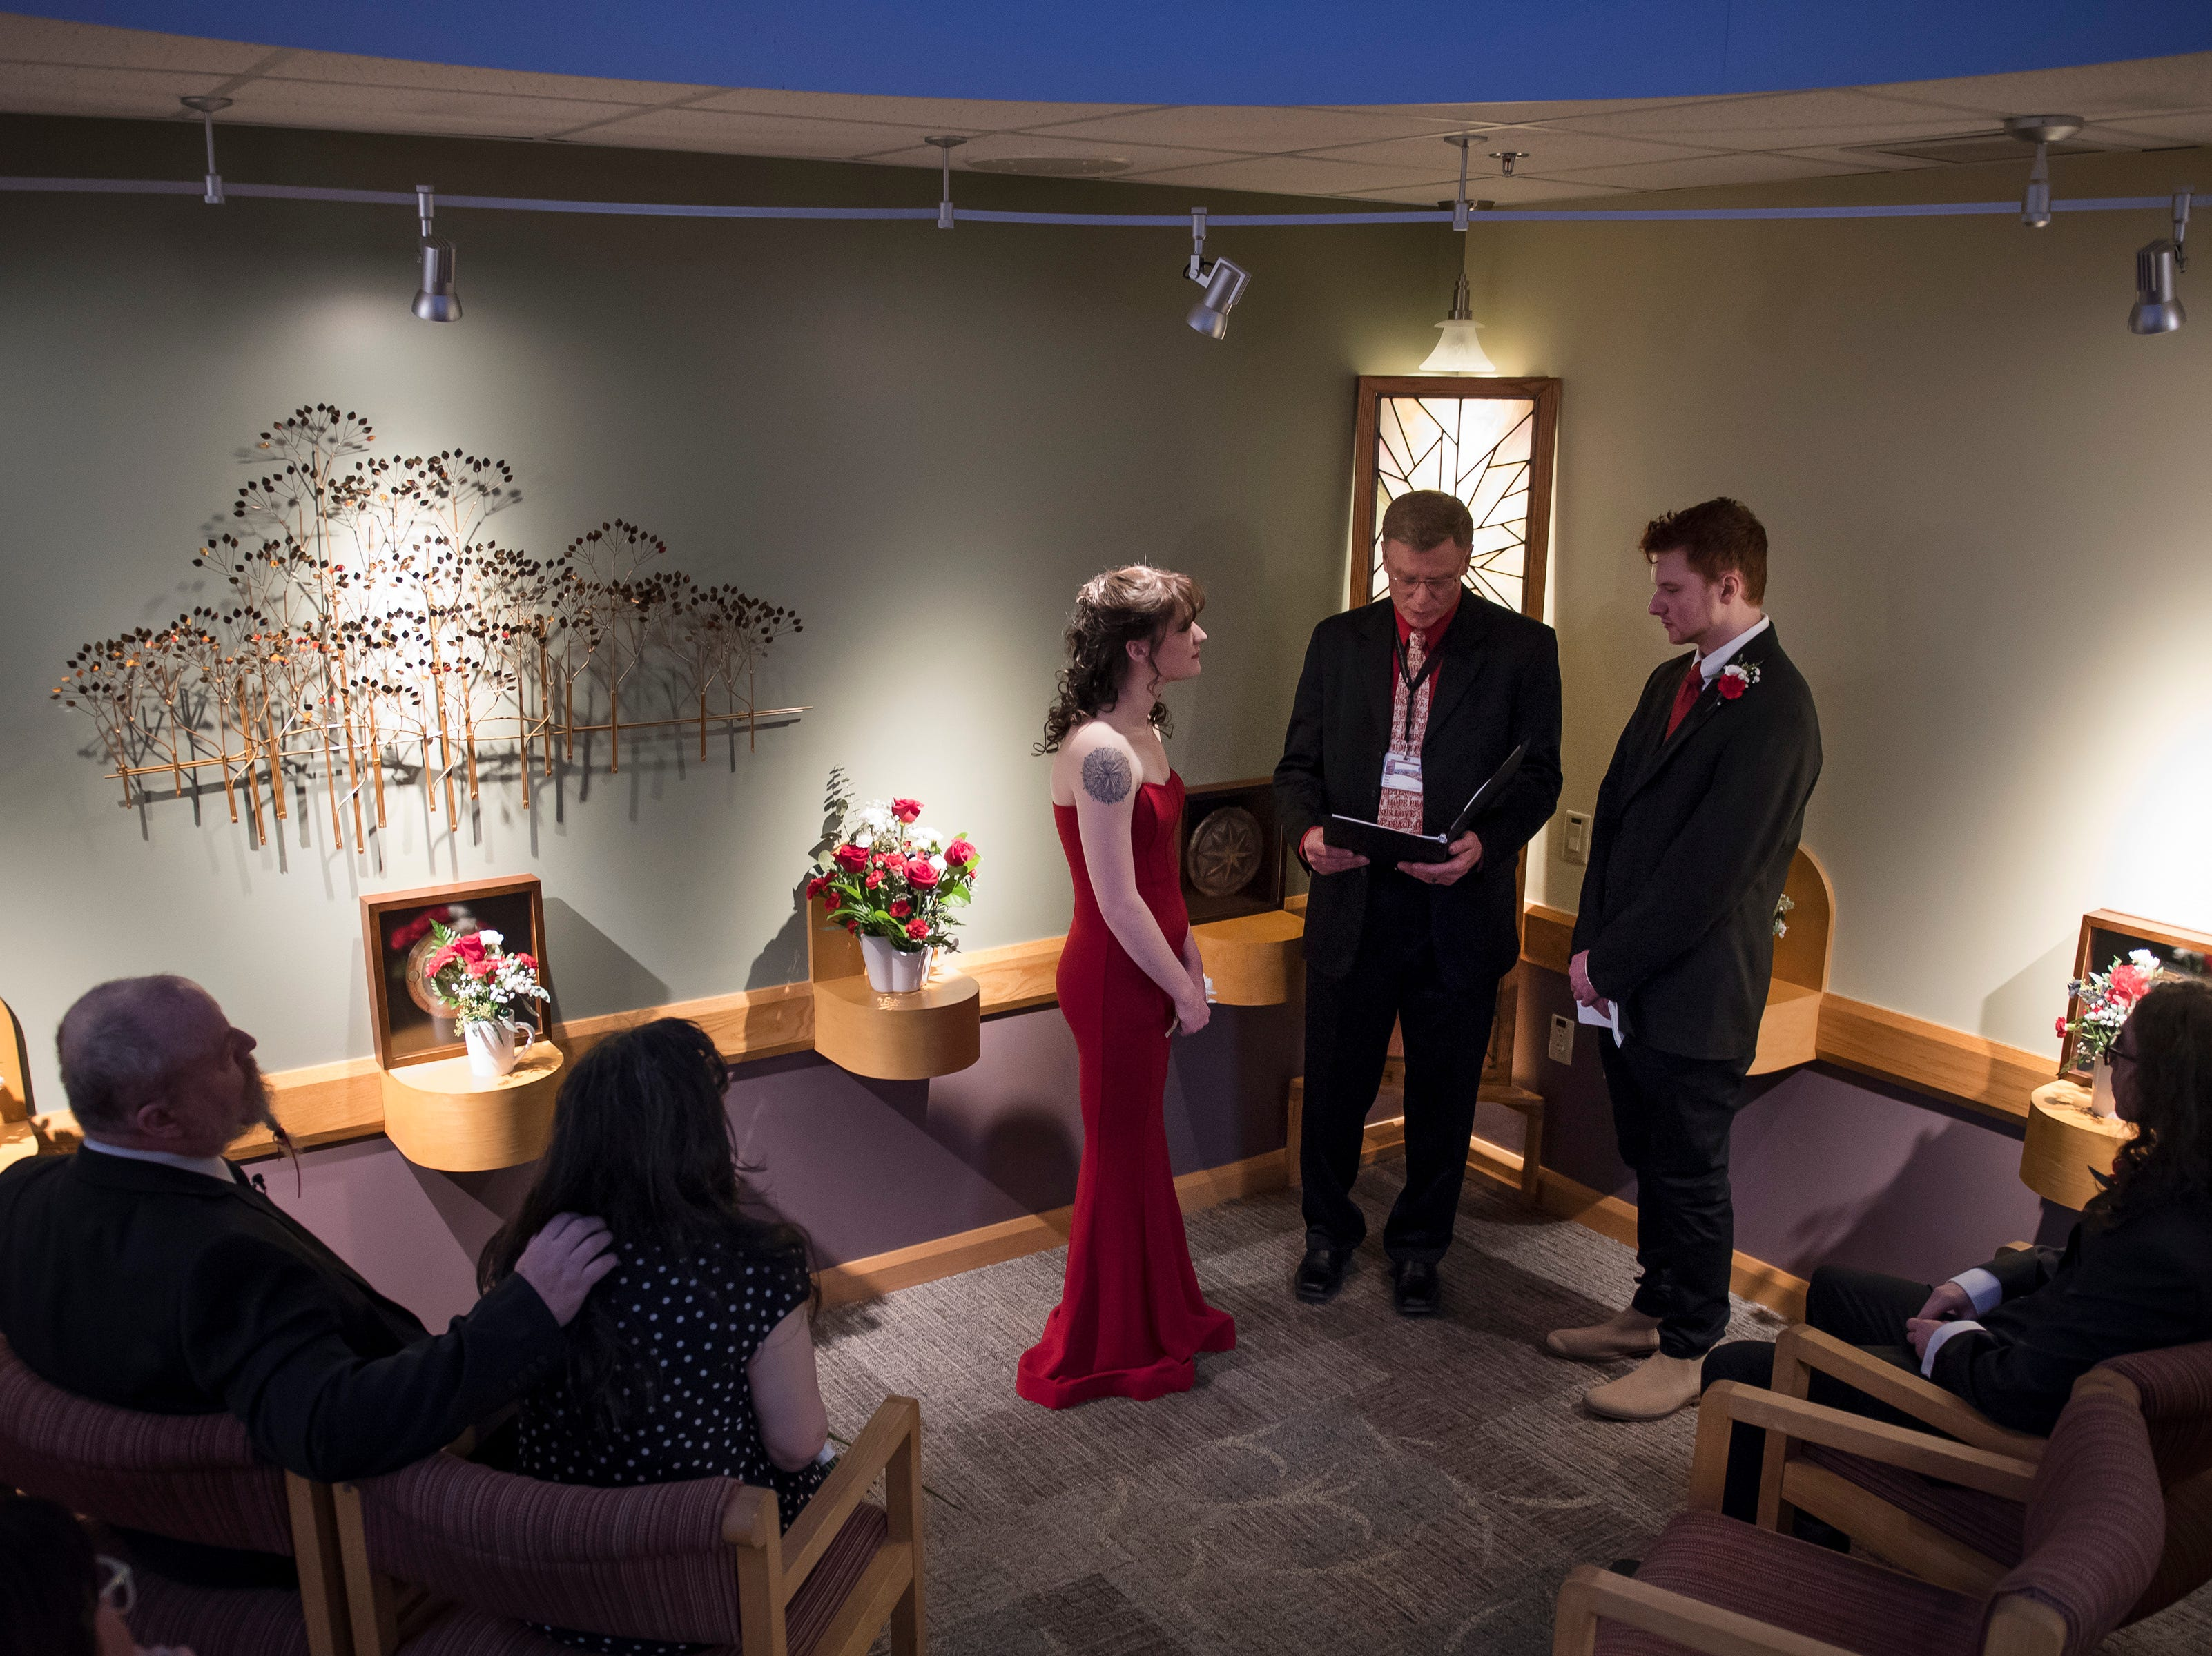 """Chaplain Terry Skov conducts the wedding ceremony of Grace Justice and James """"Christian"""" Christian while Grace's father and mother, Paul and Kelly Justice, left, and brother Dean Justice, right, look on, on Thursday, Feb. 14, 2019, at UCHealth Poudre Valley Hospital in Fort Collins, Colo."""